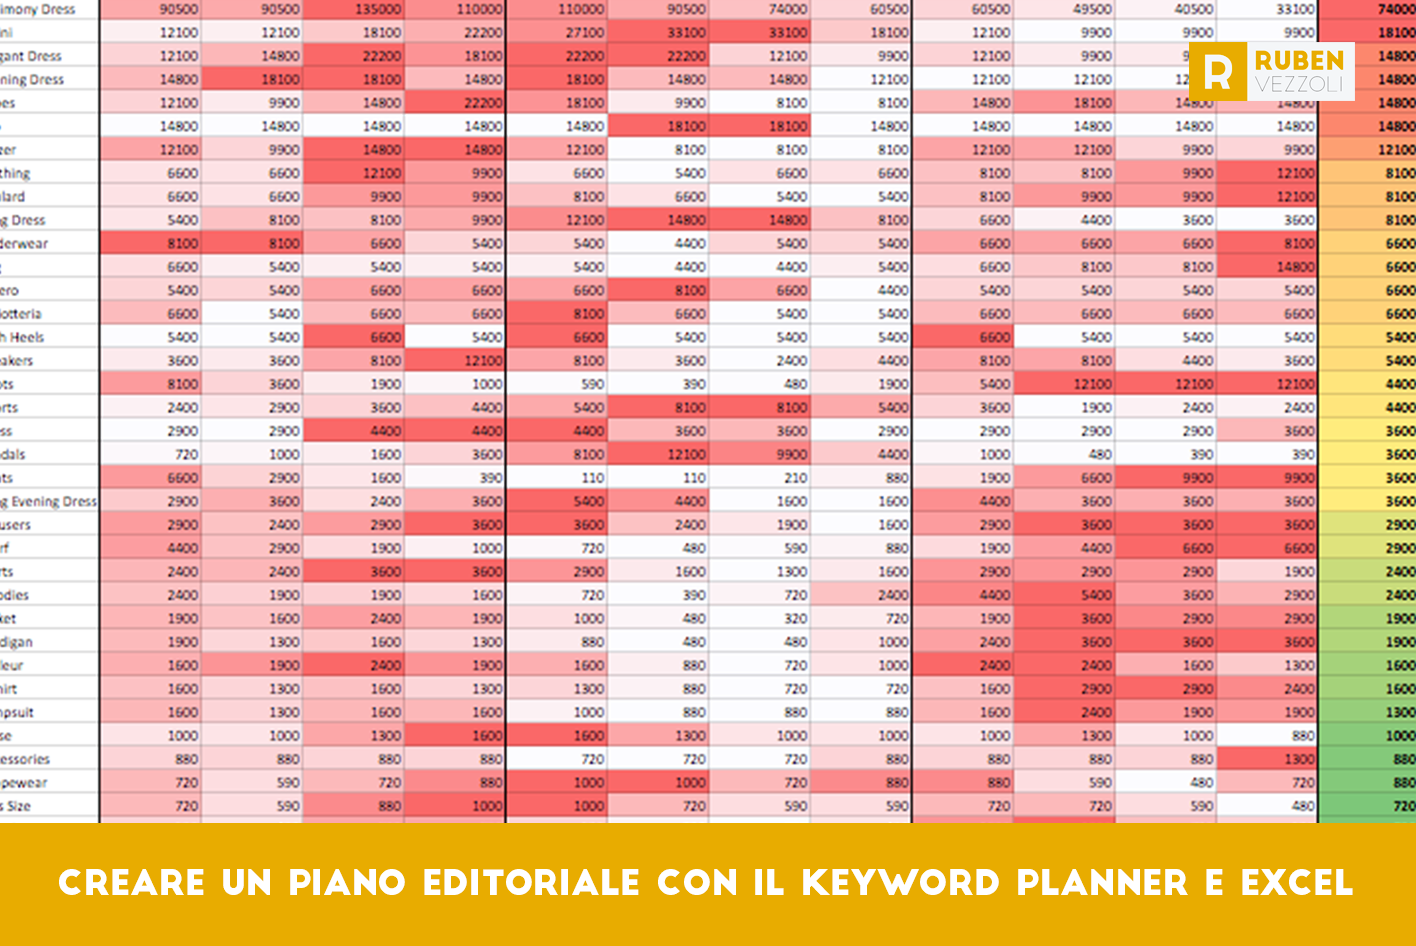 Come Creare Un Calendario Con Excel.Creare Un Piano Editoriale Con Il Keyword Planner E Excel